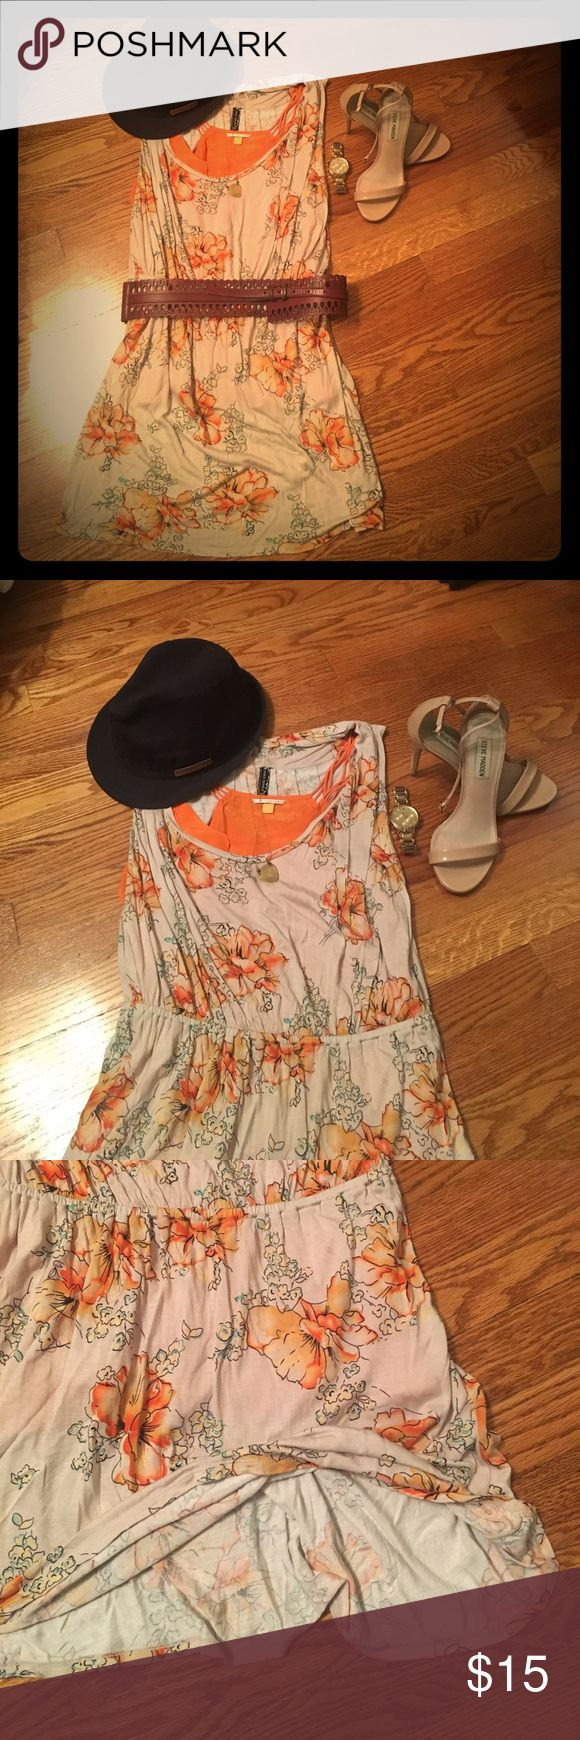 Free People Dress & Leifsdottir Silk Orange Cami Aloha. Beach days or Taco Tuesdays. Free people 100% viscose jersey dress-size M. Hand wash cold and lay flat to dry. Elastic waste. Leifsdottir orange 100% silk cami, size 0 dry clean only, comes with it. Lightly worn. Free People Dresses